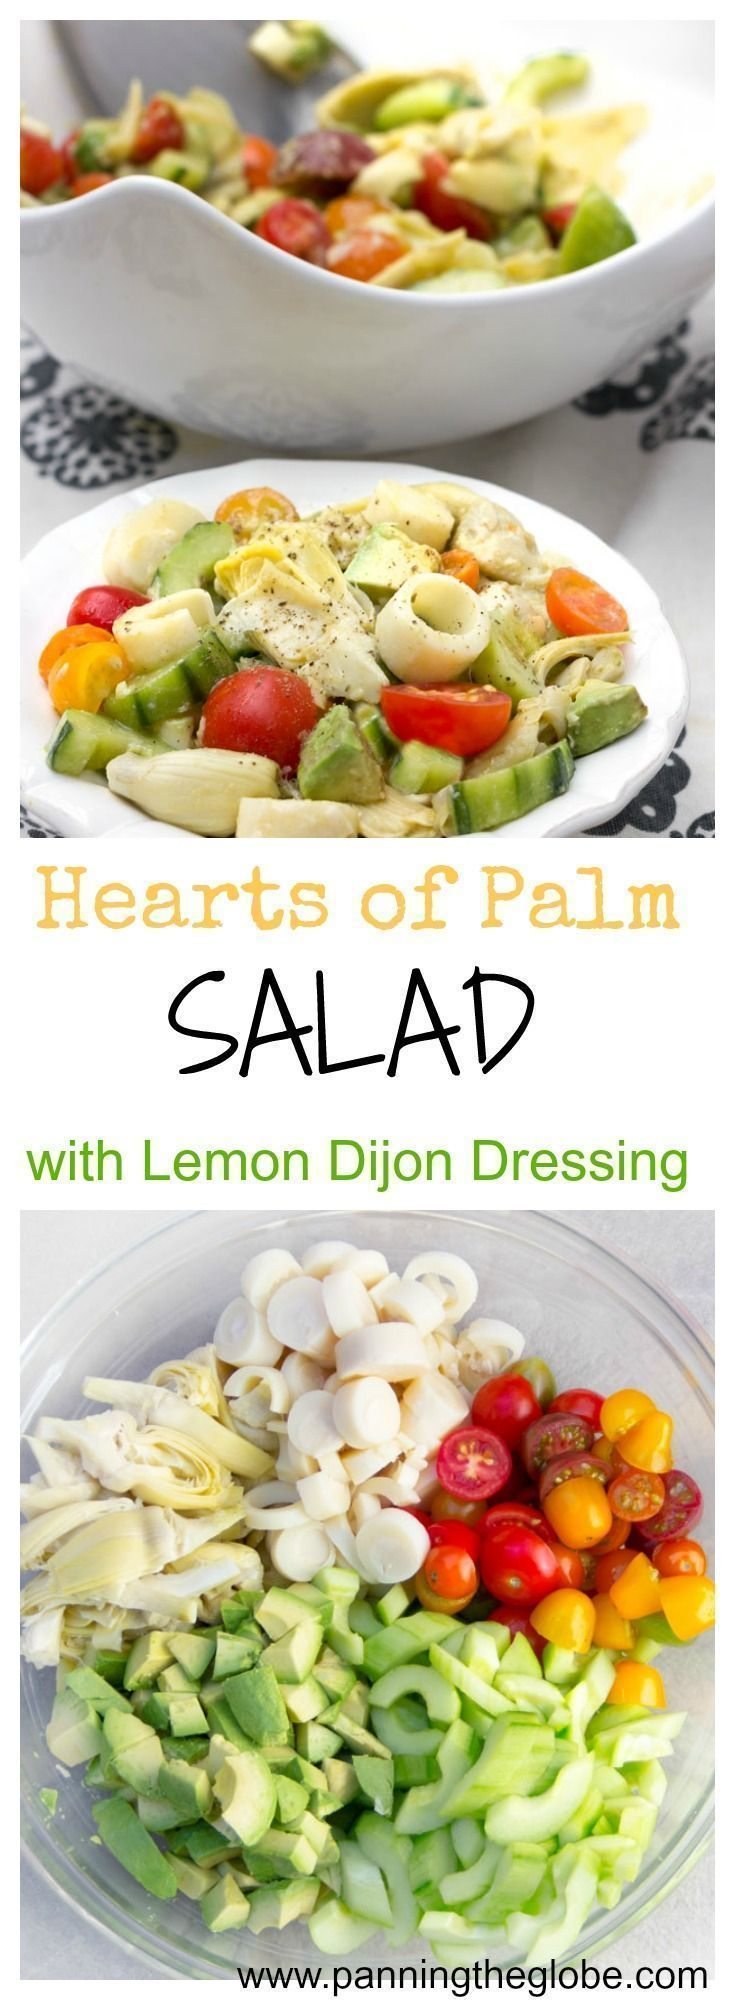 This Brazilian-style hearts of palm salad has rich flavors and an exotic quality about it, yet it��s a healthy and easy recipe to throw together. Just some slicing and dicing and a wonderful lemony, mustardy, garlicky dressing that brings it all together.